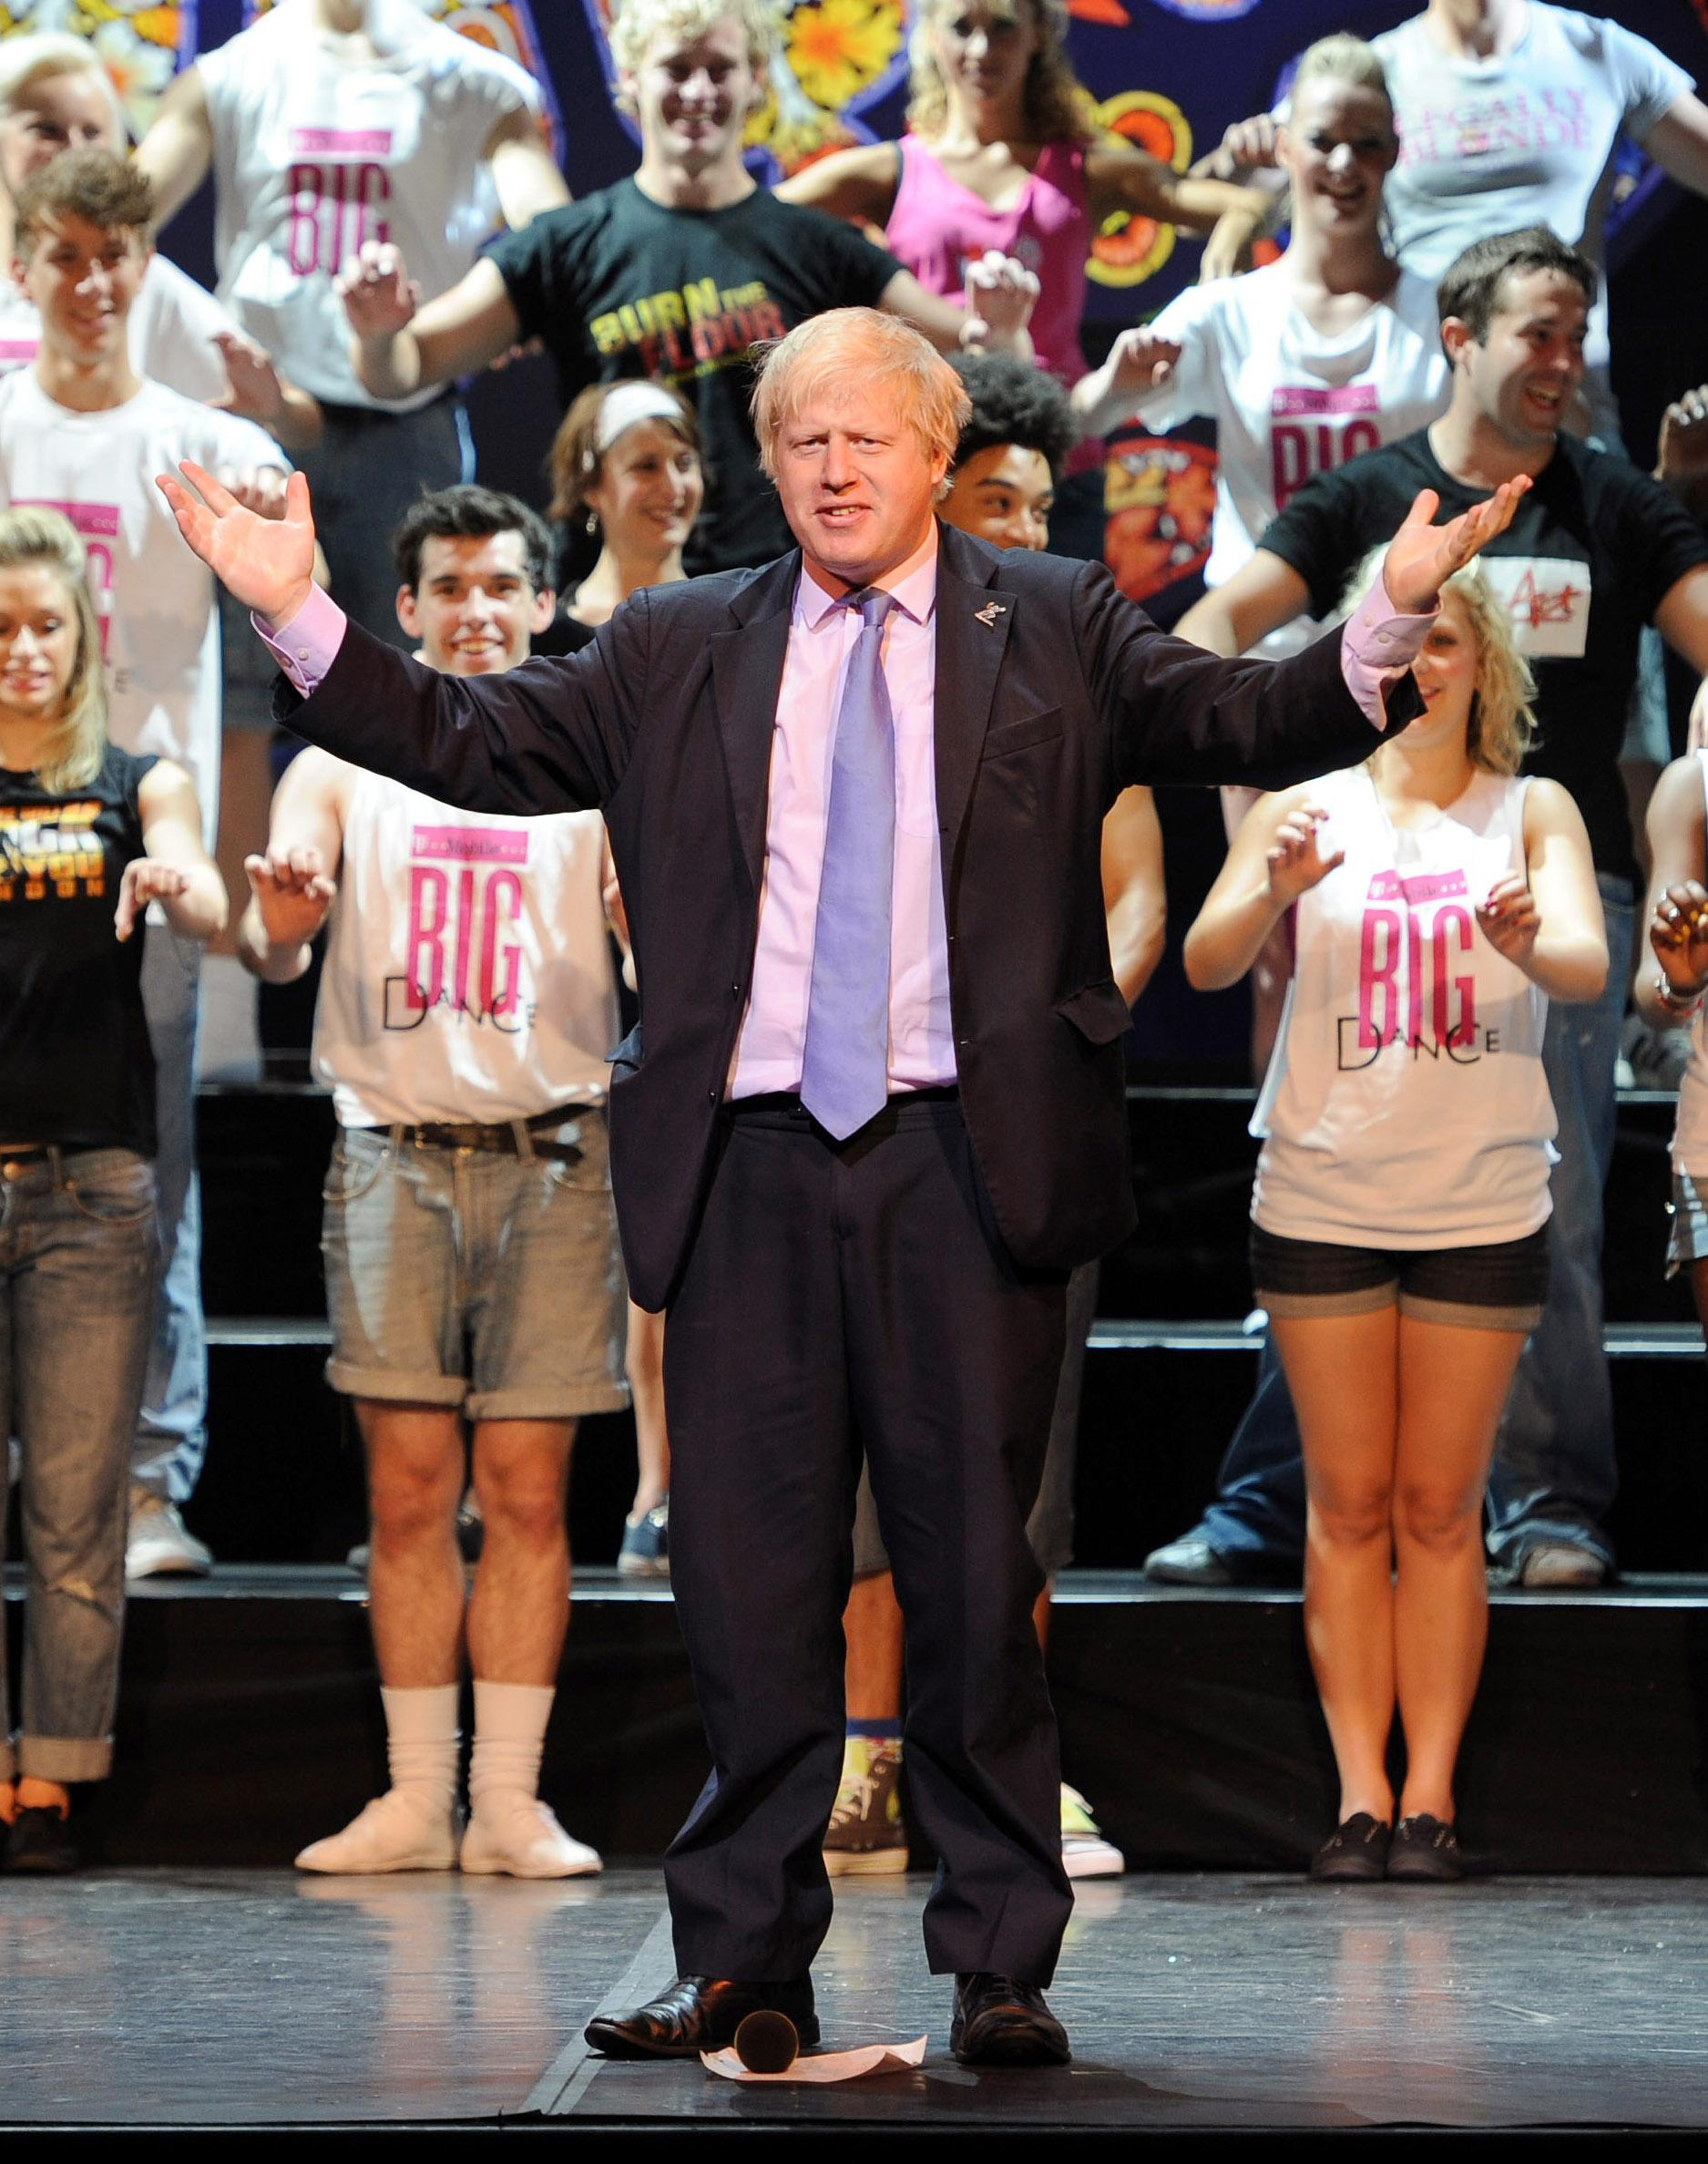 Mayor of London Boris Johnson takes to the stage to launch T-Mobile Big Dance 2010 at the London Palladium, London.